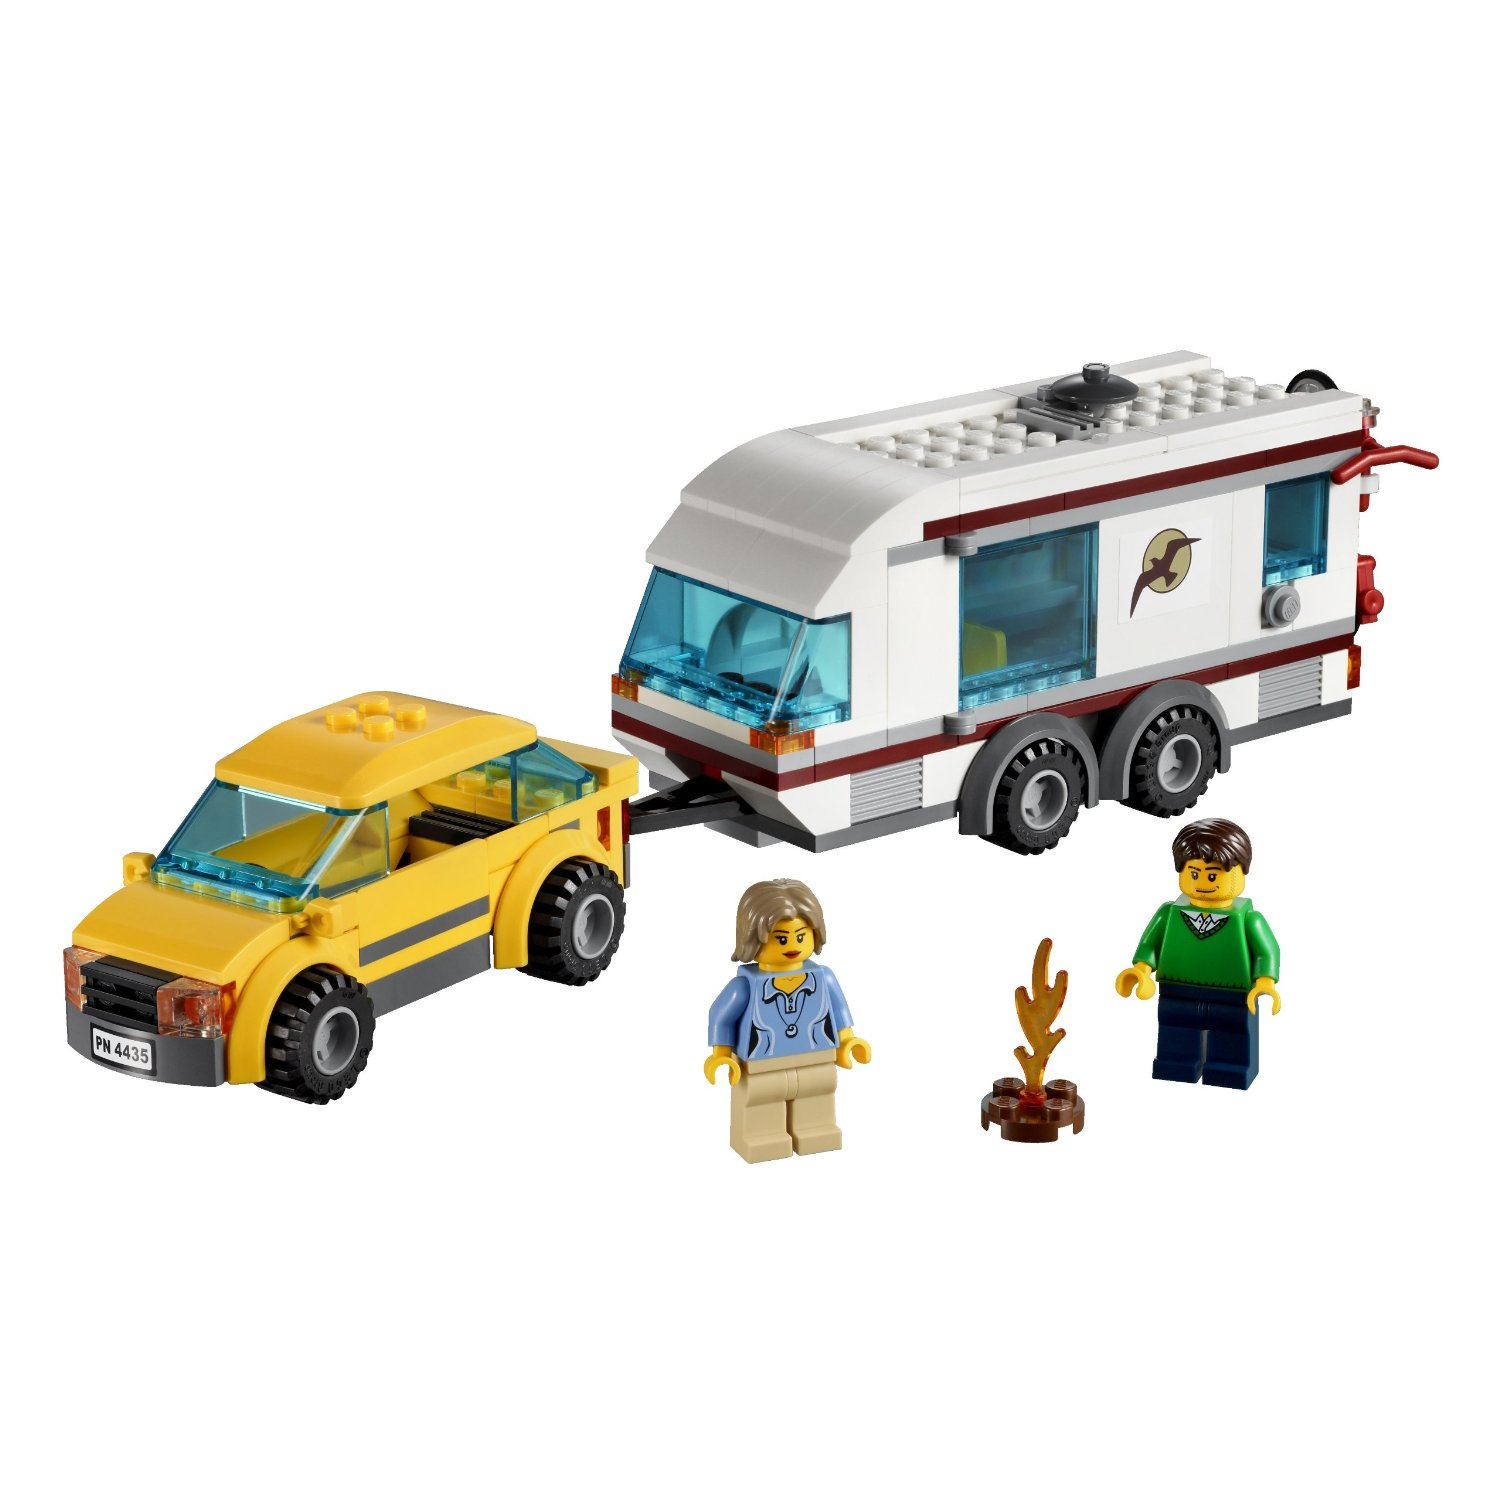 4435 la voiture et sa caravane wiki lego fandom powered by wikia. Black Bedroom Furniture Sets. Home Design Ideas